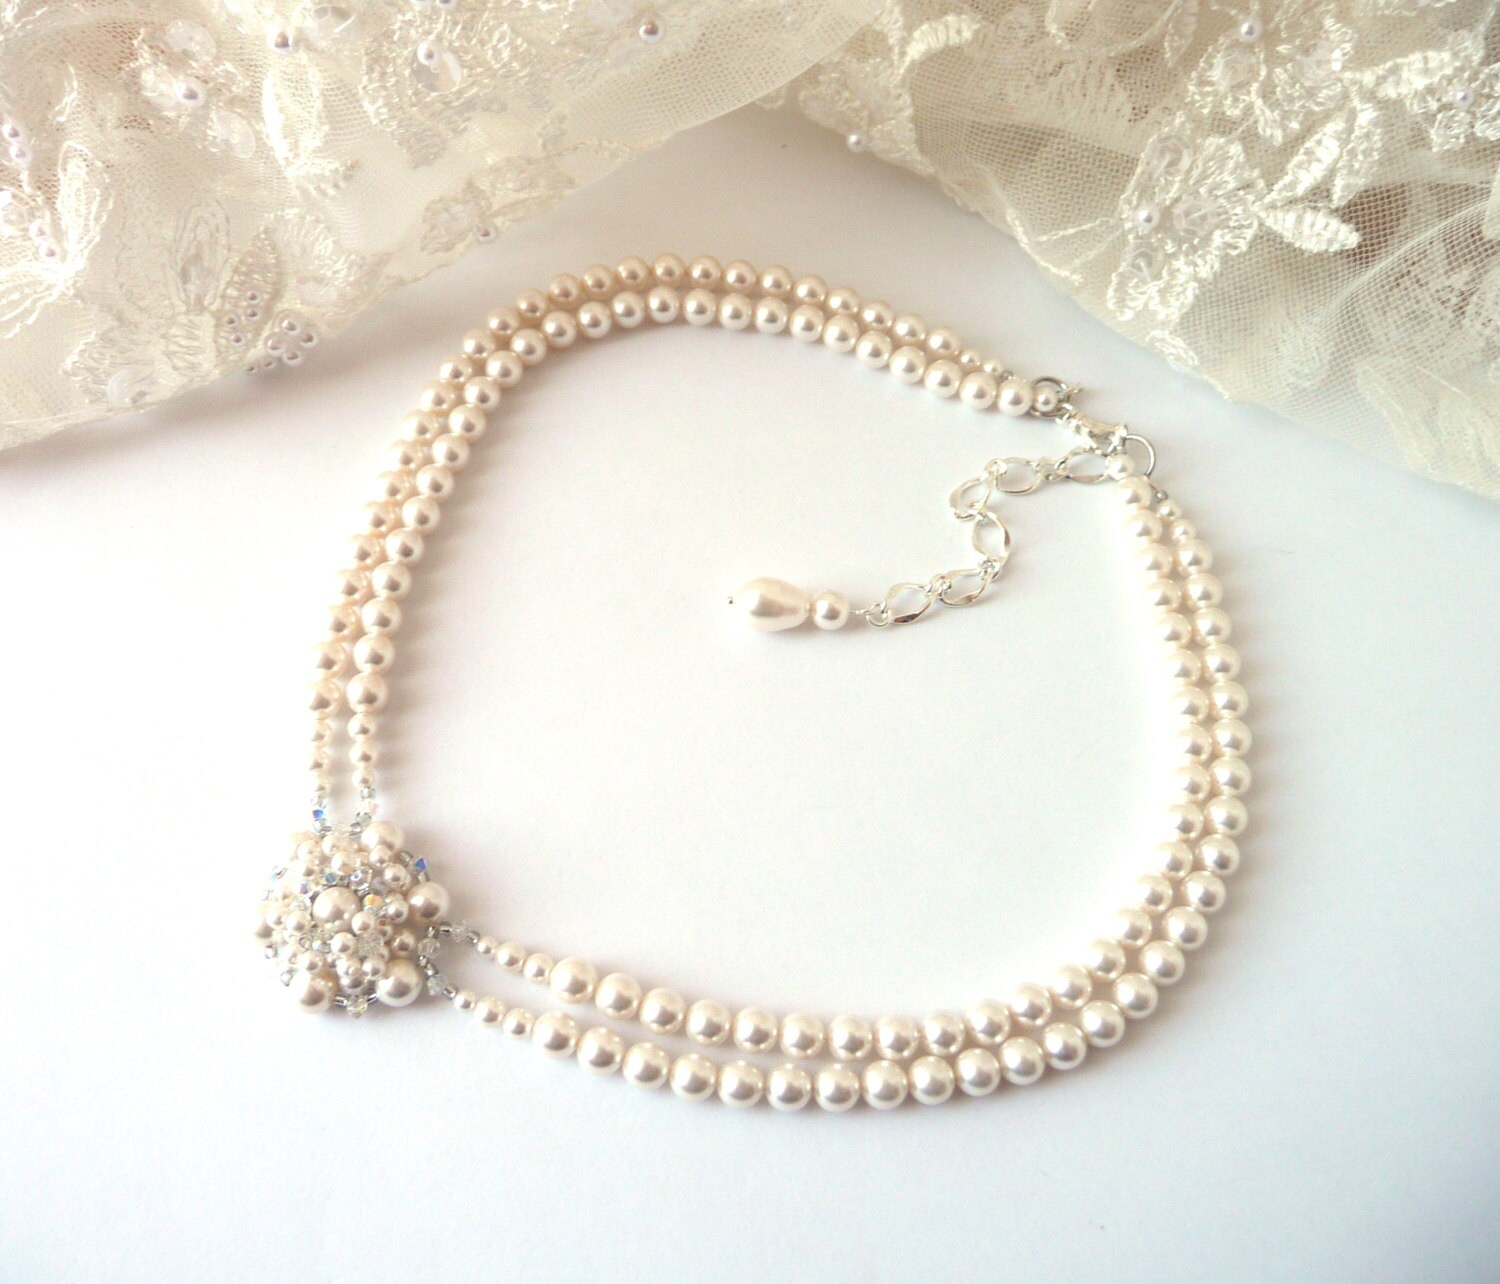 dd4eaaf9f957f Pearl Choker Necklace, Wedding Necklace, IVORY or WHITE Pearl Statement  Necklace, Bridal Necklace Pearl, Wedding Jewelry, Bridal Jewelry